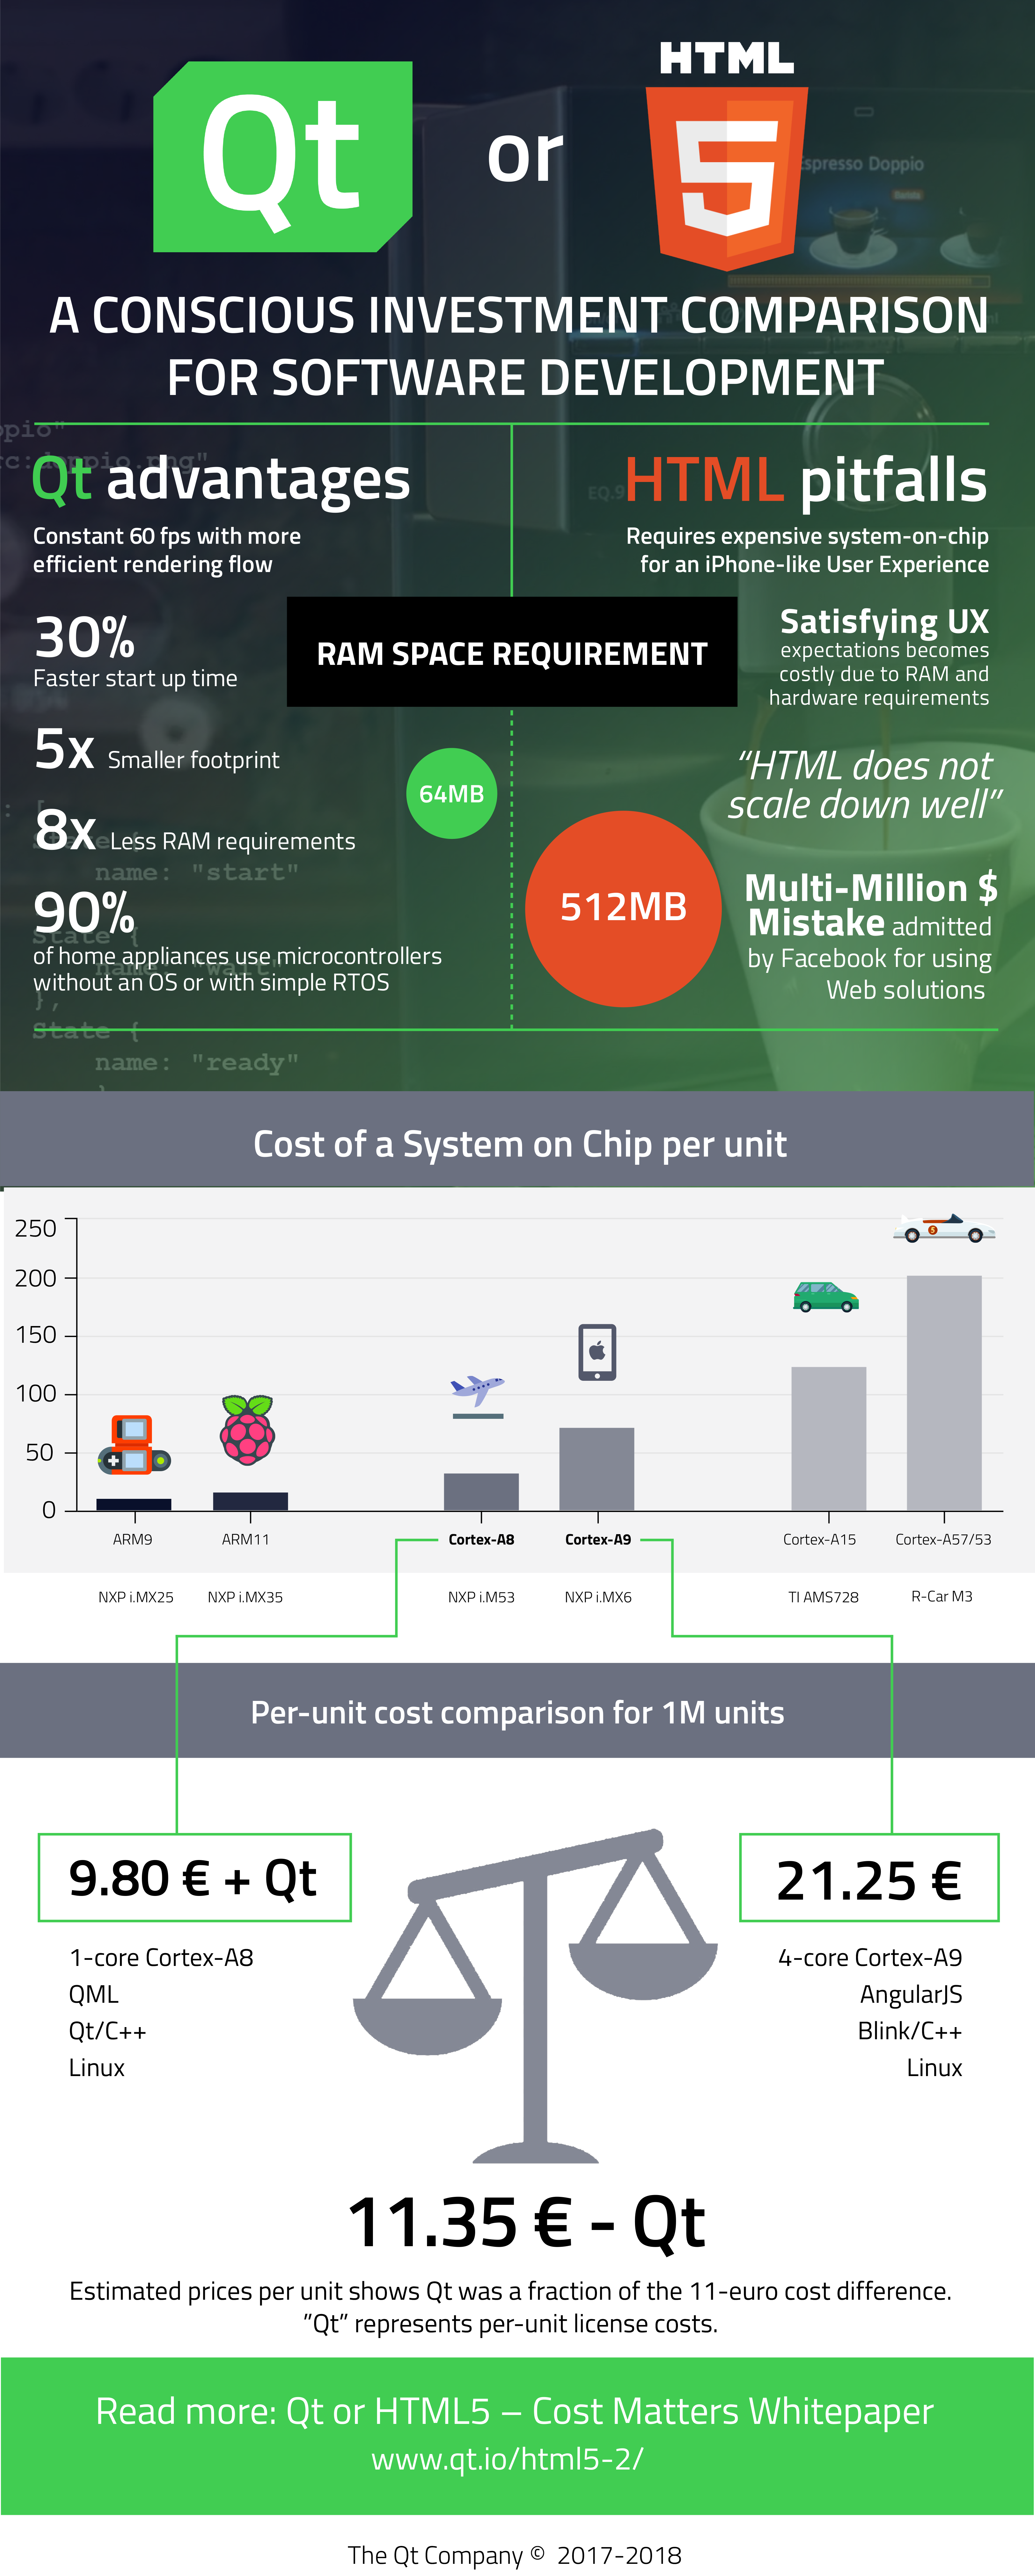 infographic_HTML5-2.png